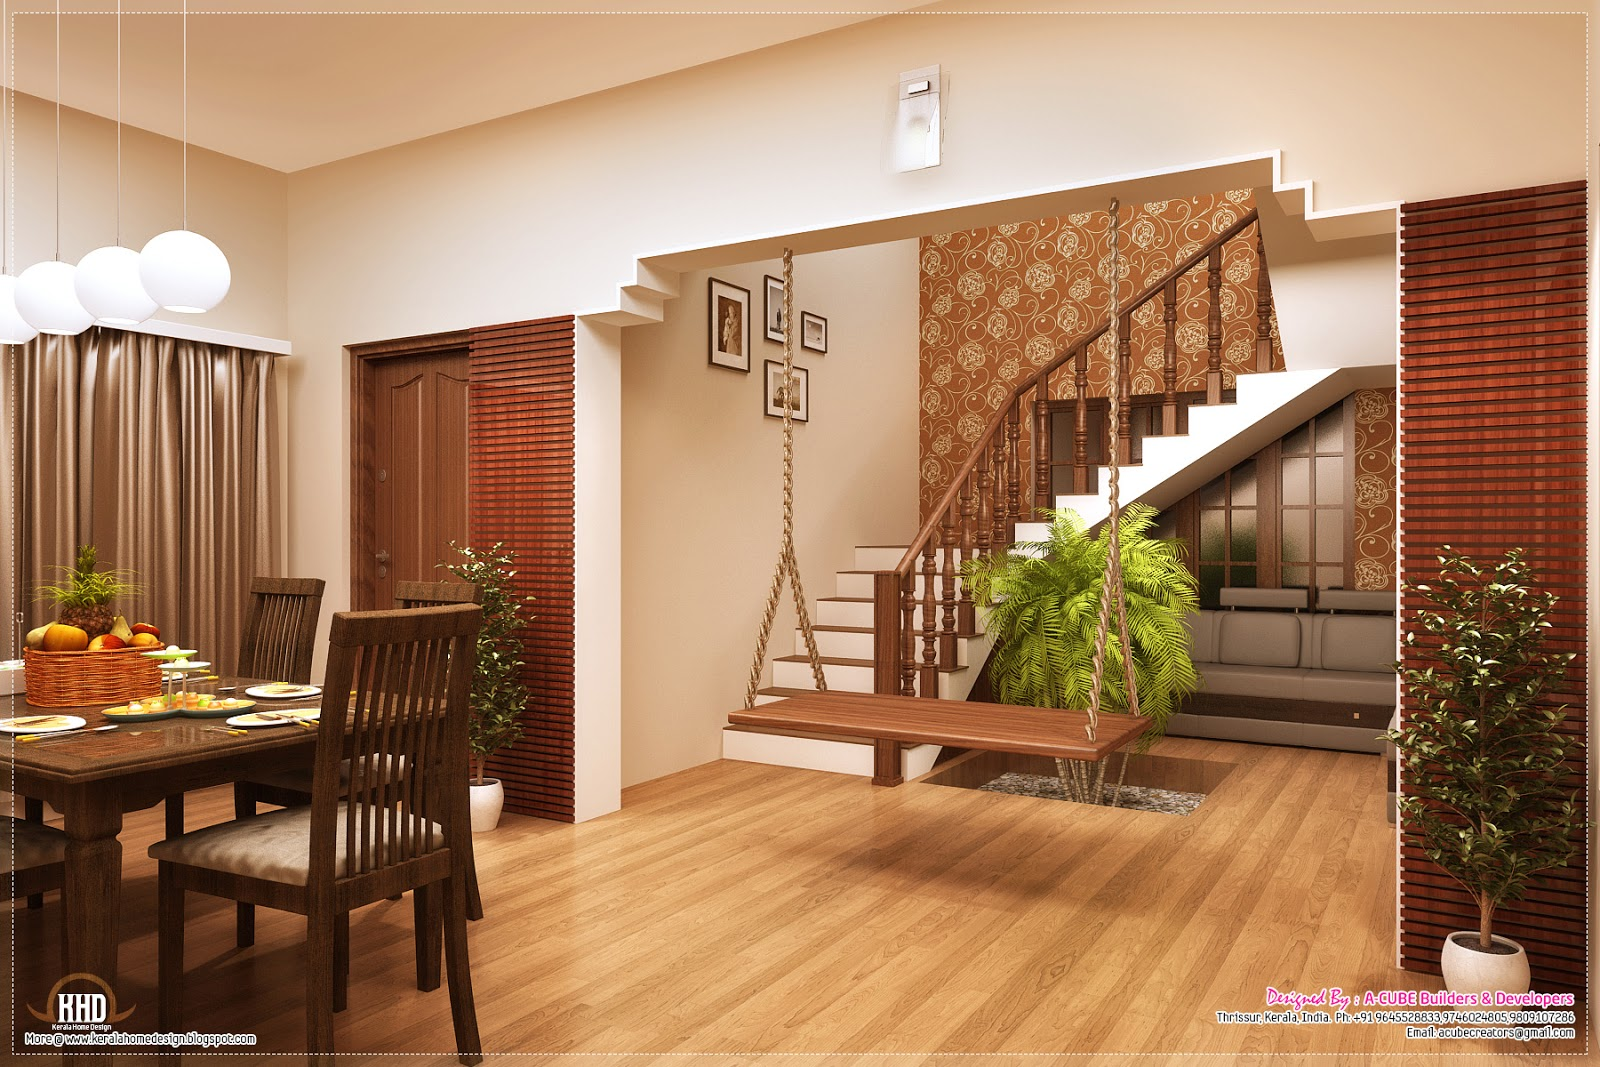 Awesome interior decoration ideas kerala home design and for Interior decoration design in nigeria